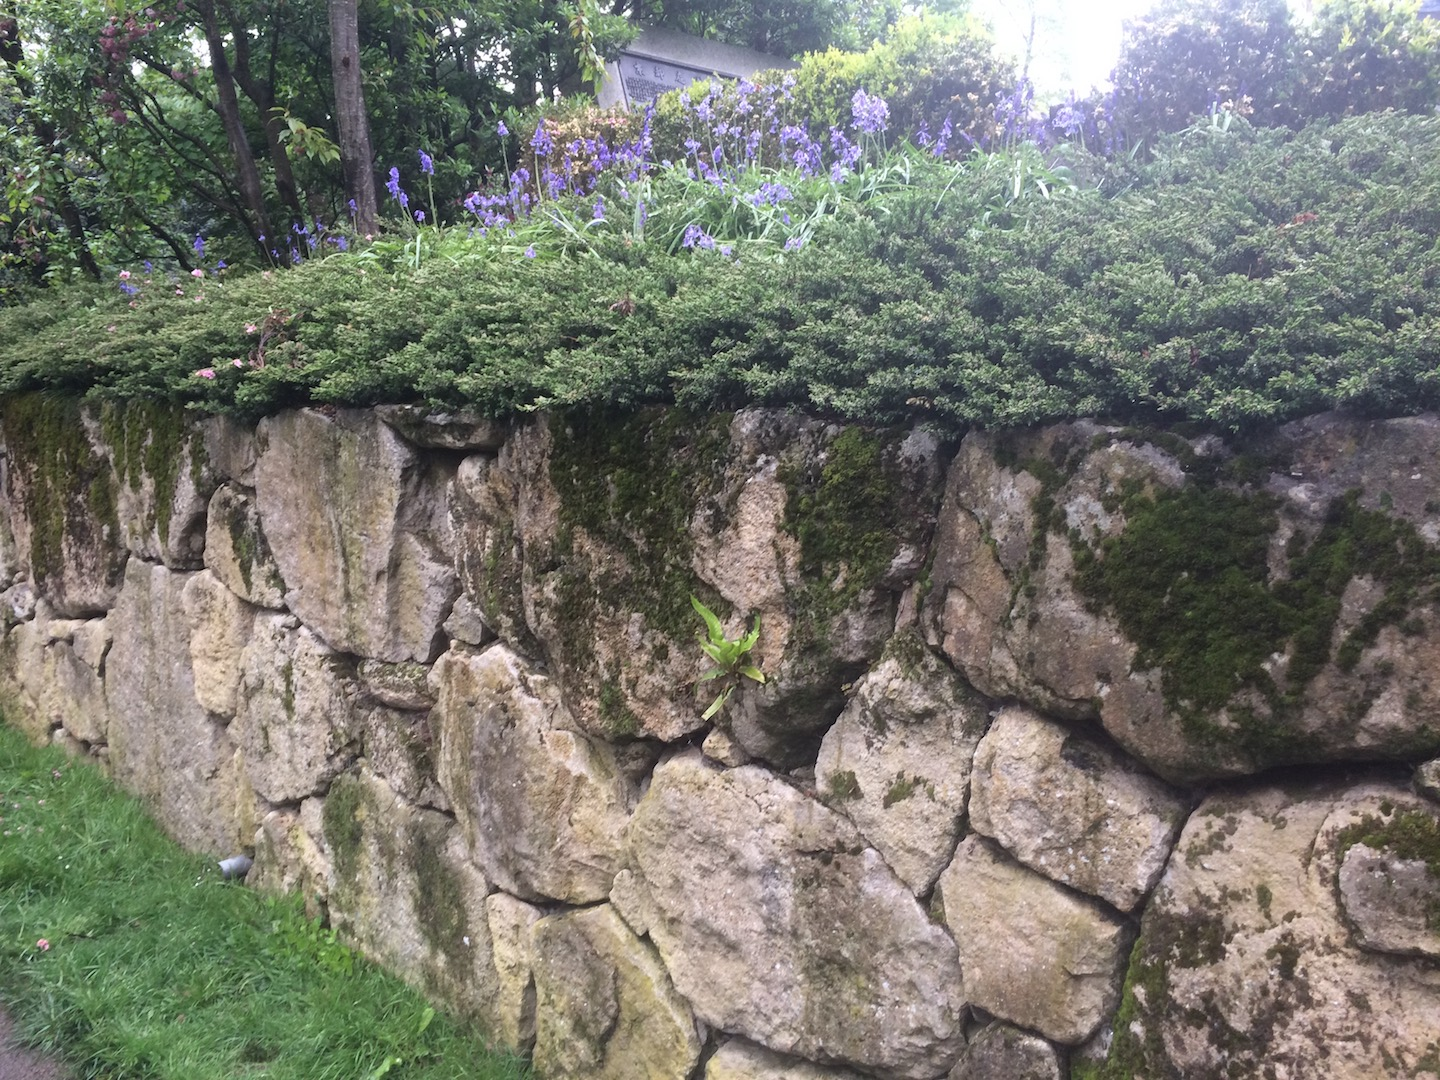 A mossy stone wall with borders and blue flowers.